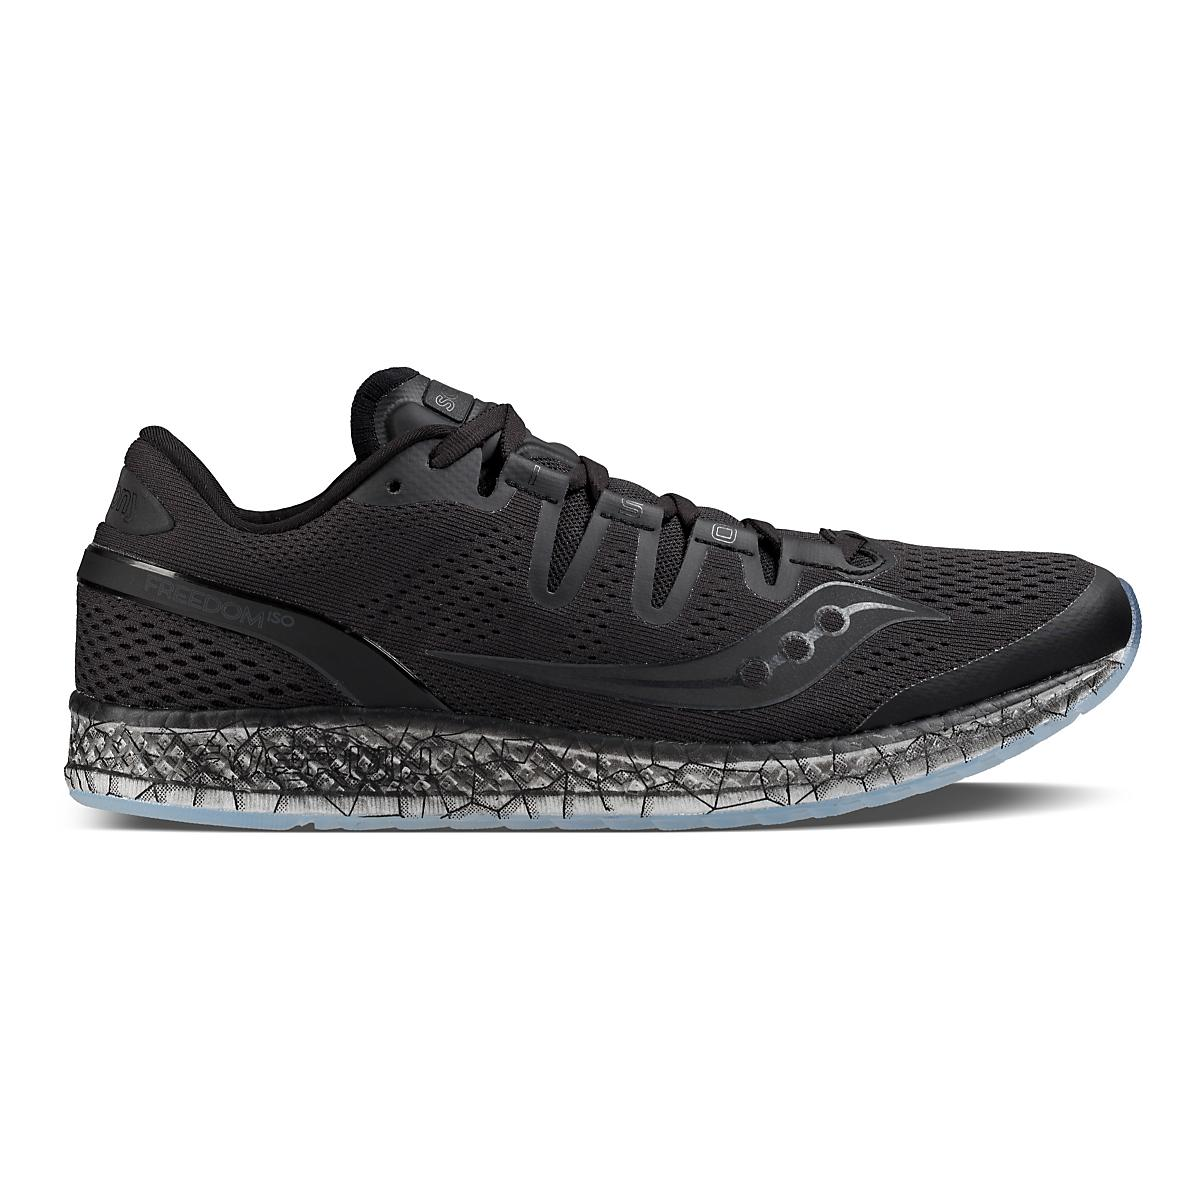 60a292431c3 Men s Saucony Freedom ISO Running Shoes from Road Runner Sports